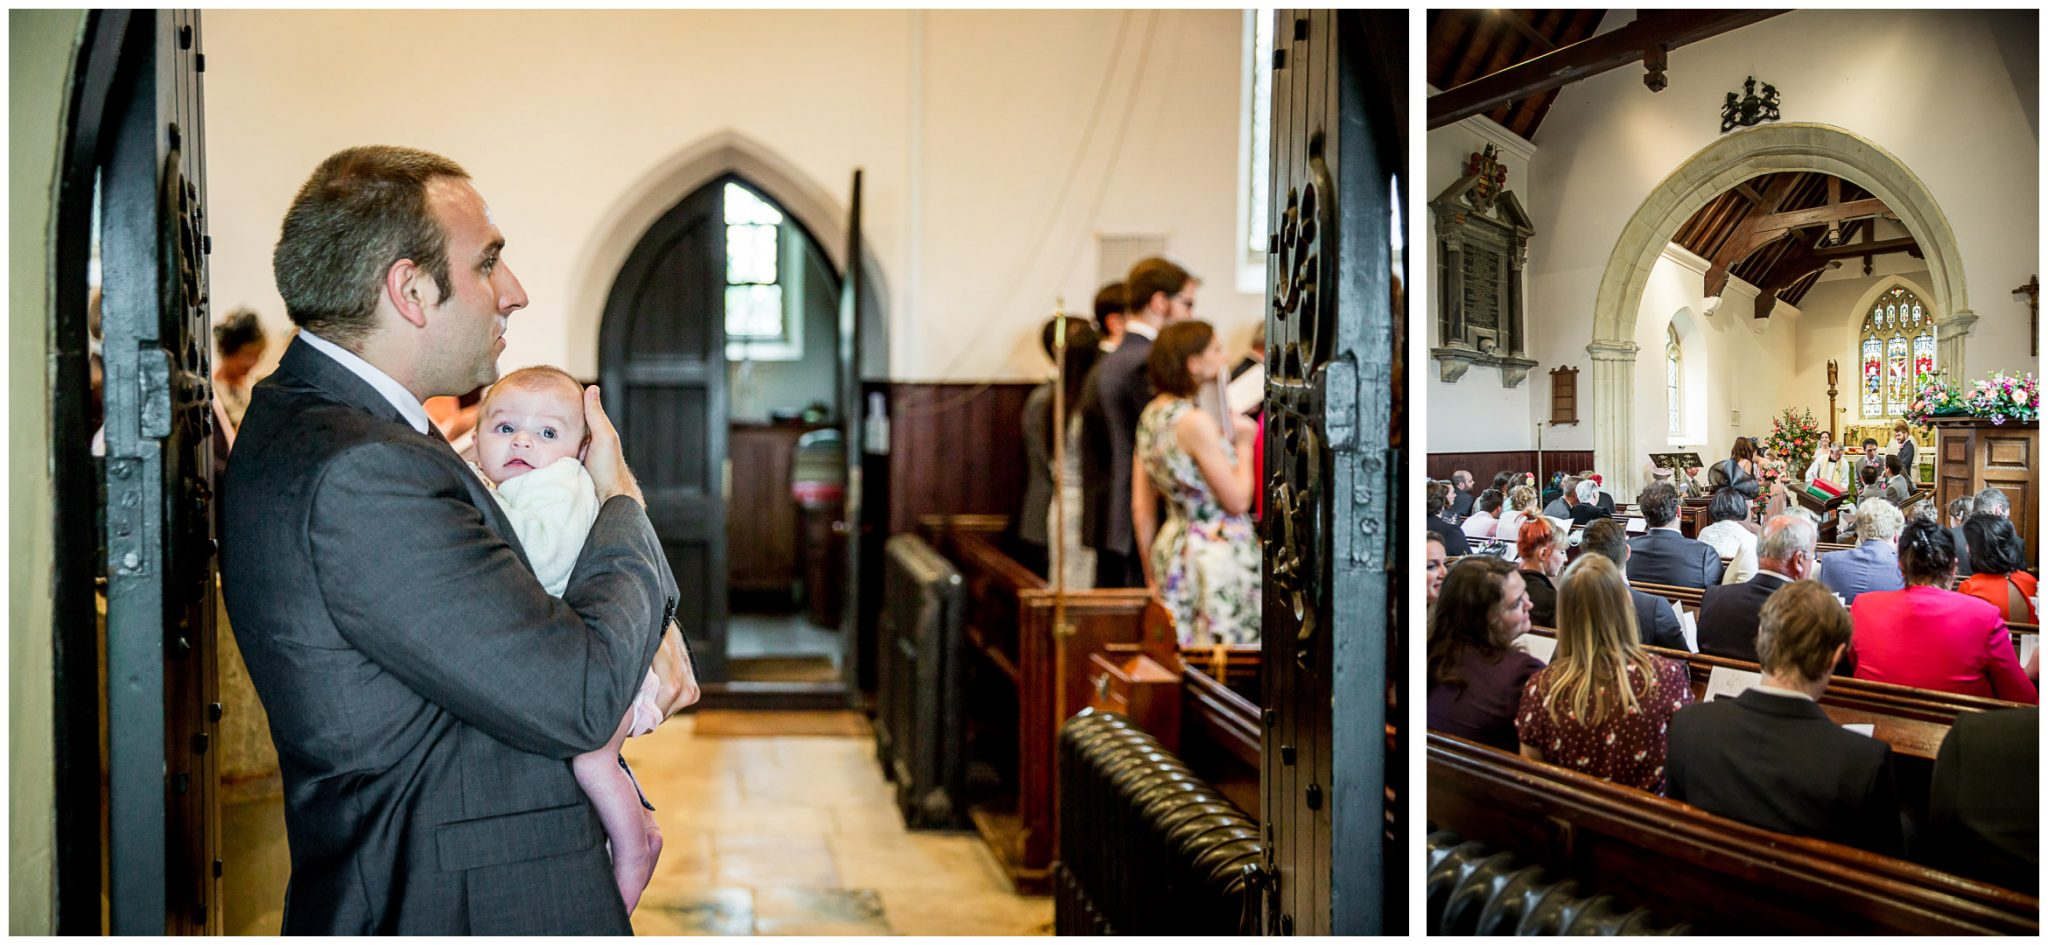 A wedding guest watches the signing of the register from the doorway